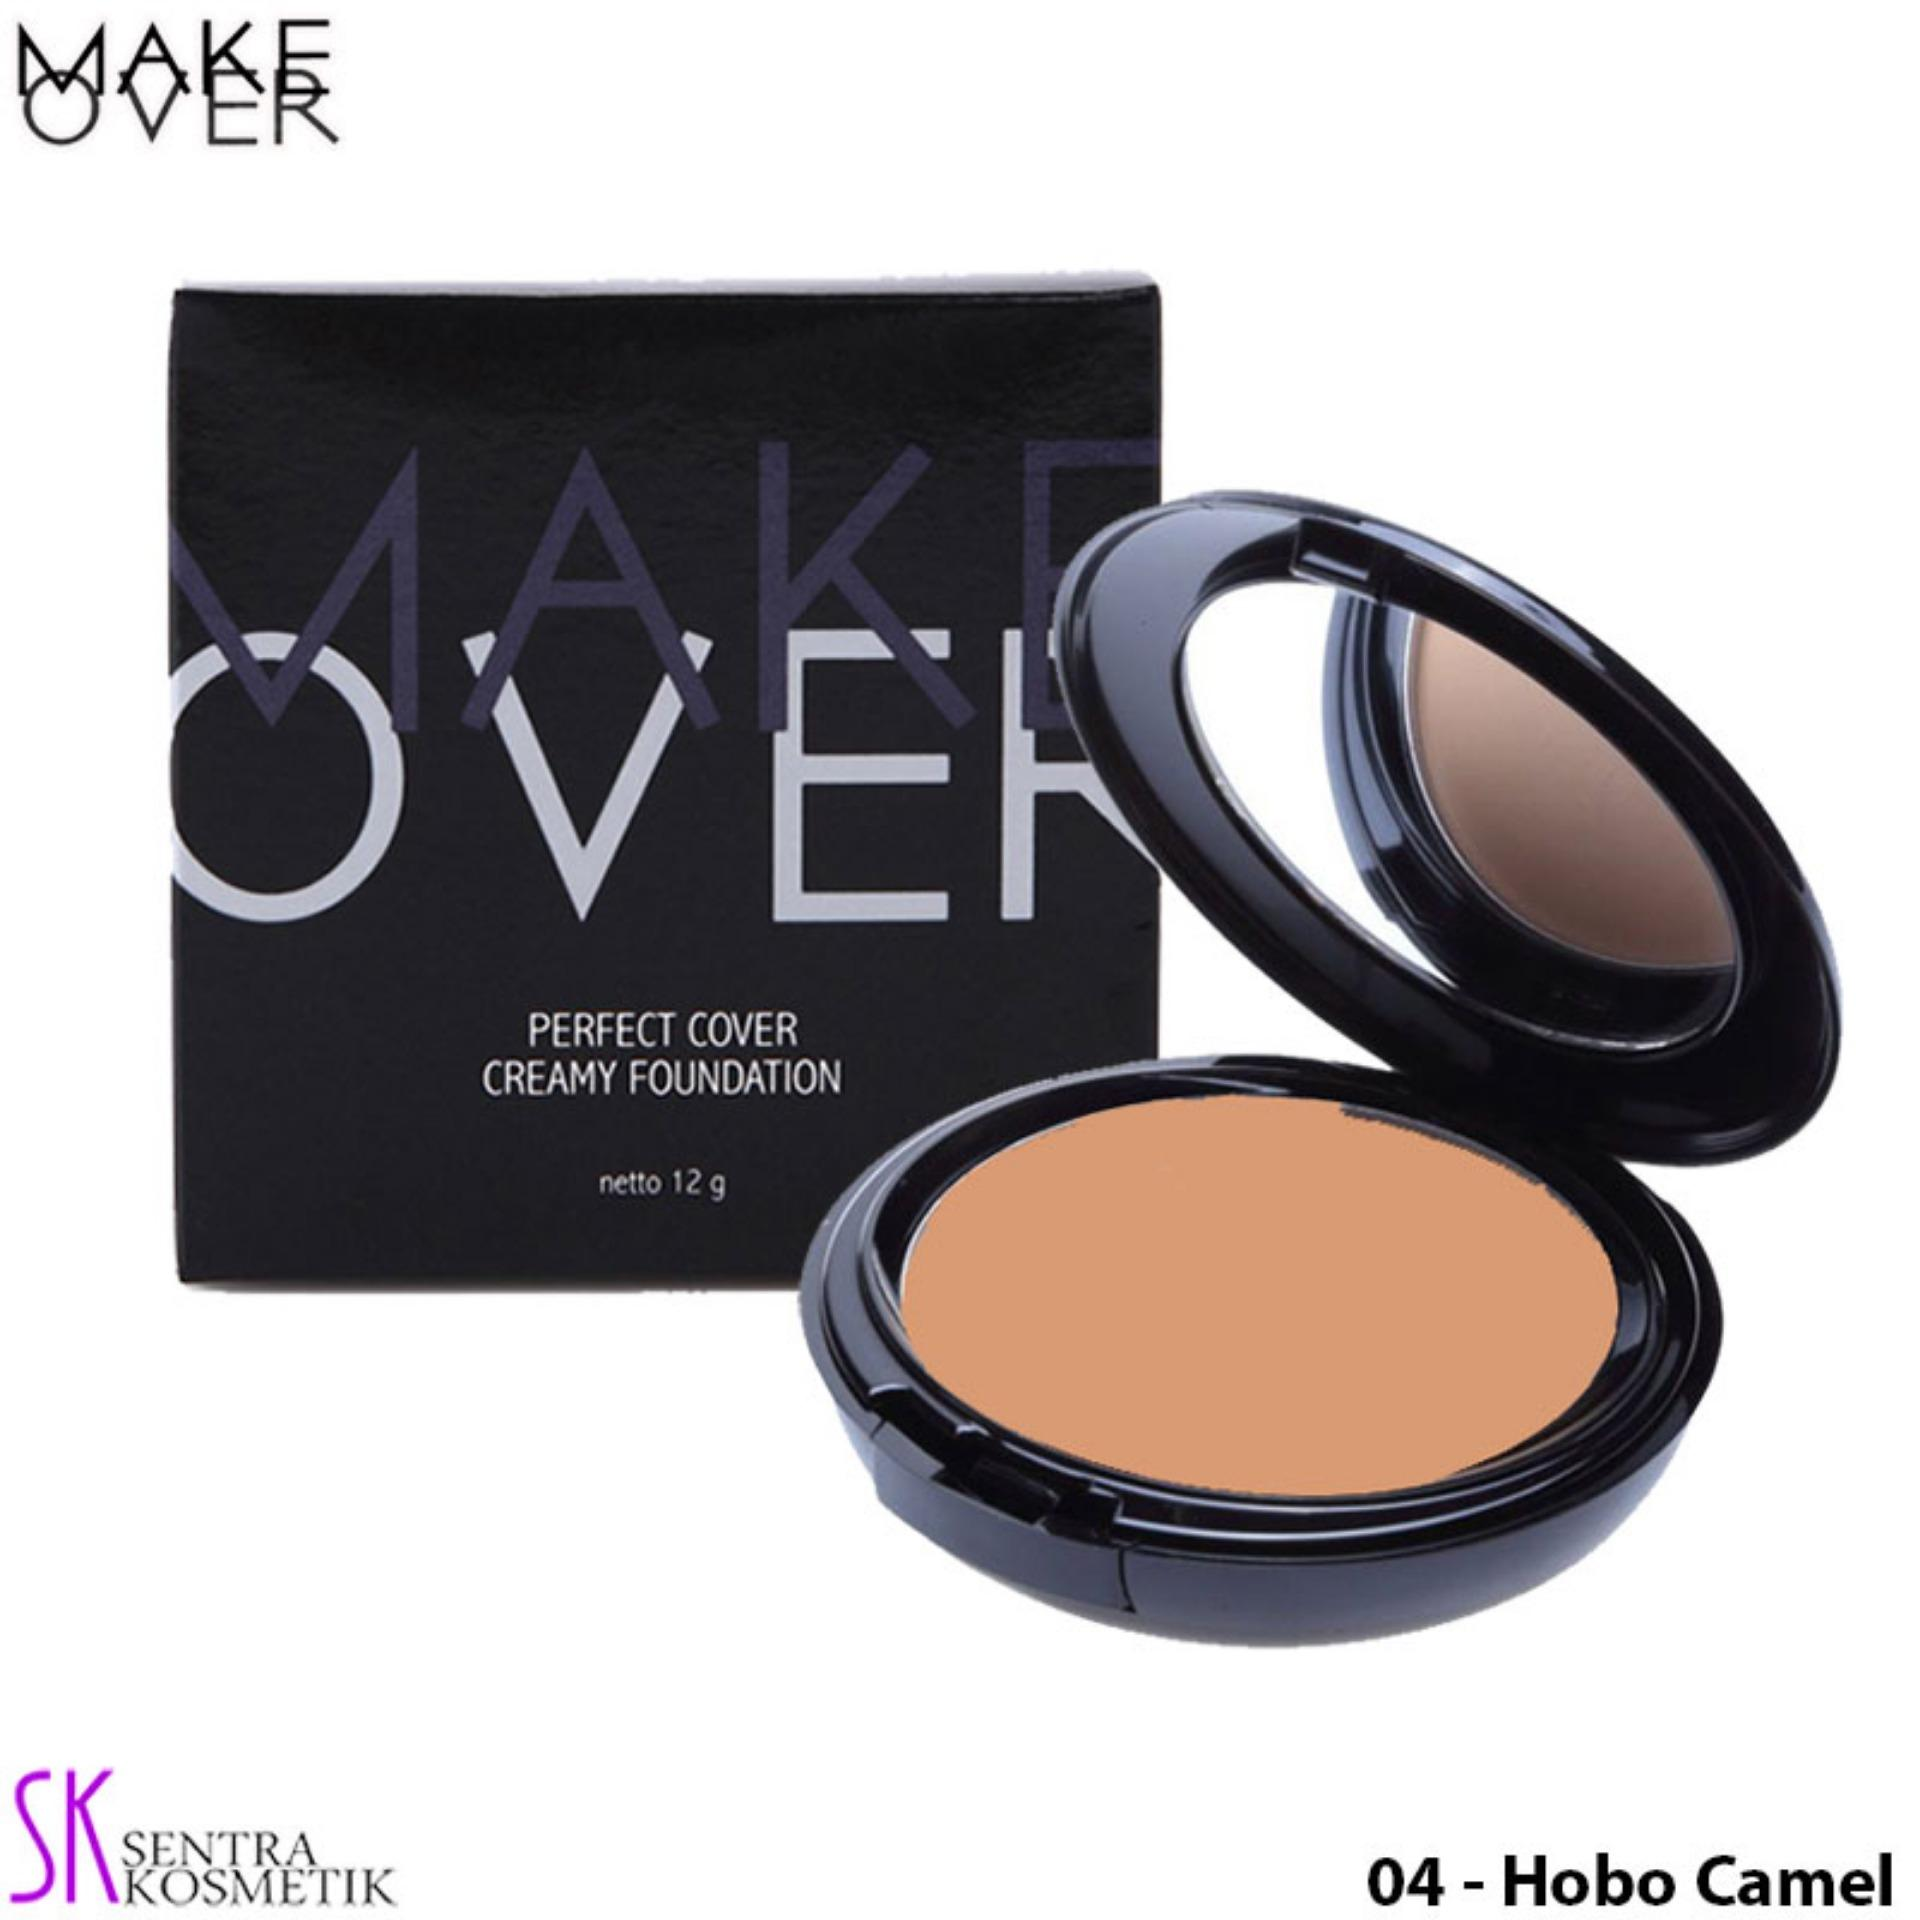 Foundation Make Over Terbaru Ultra Cover Liquid Matt 33 Ml Perfect Creamy 04 Hobo Camel